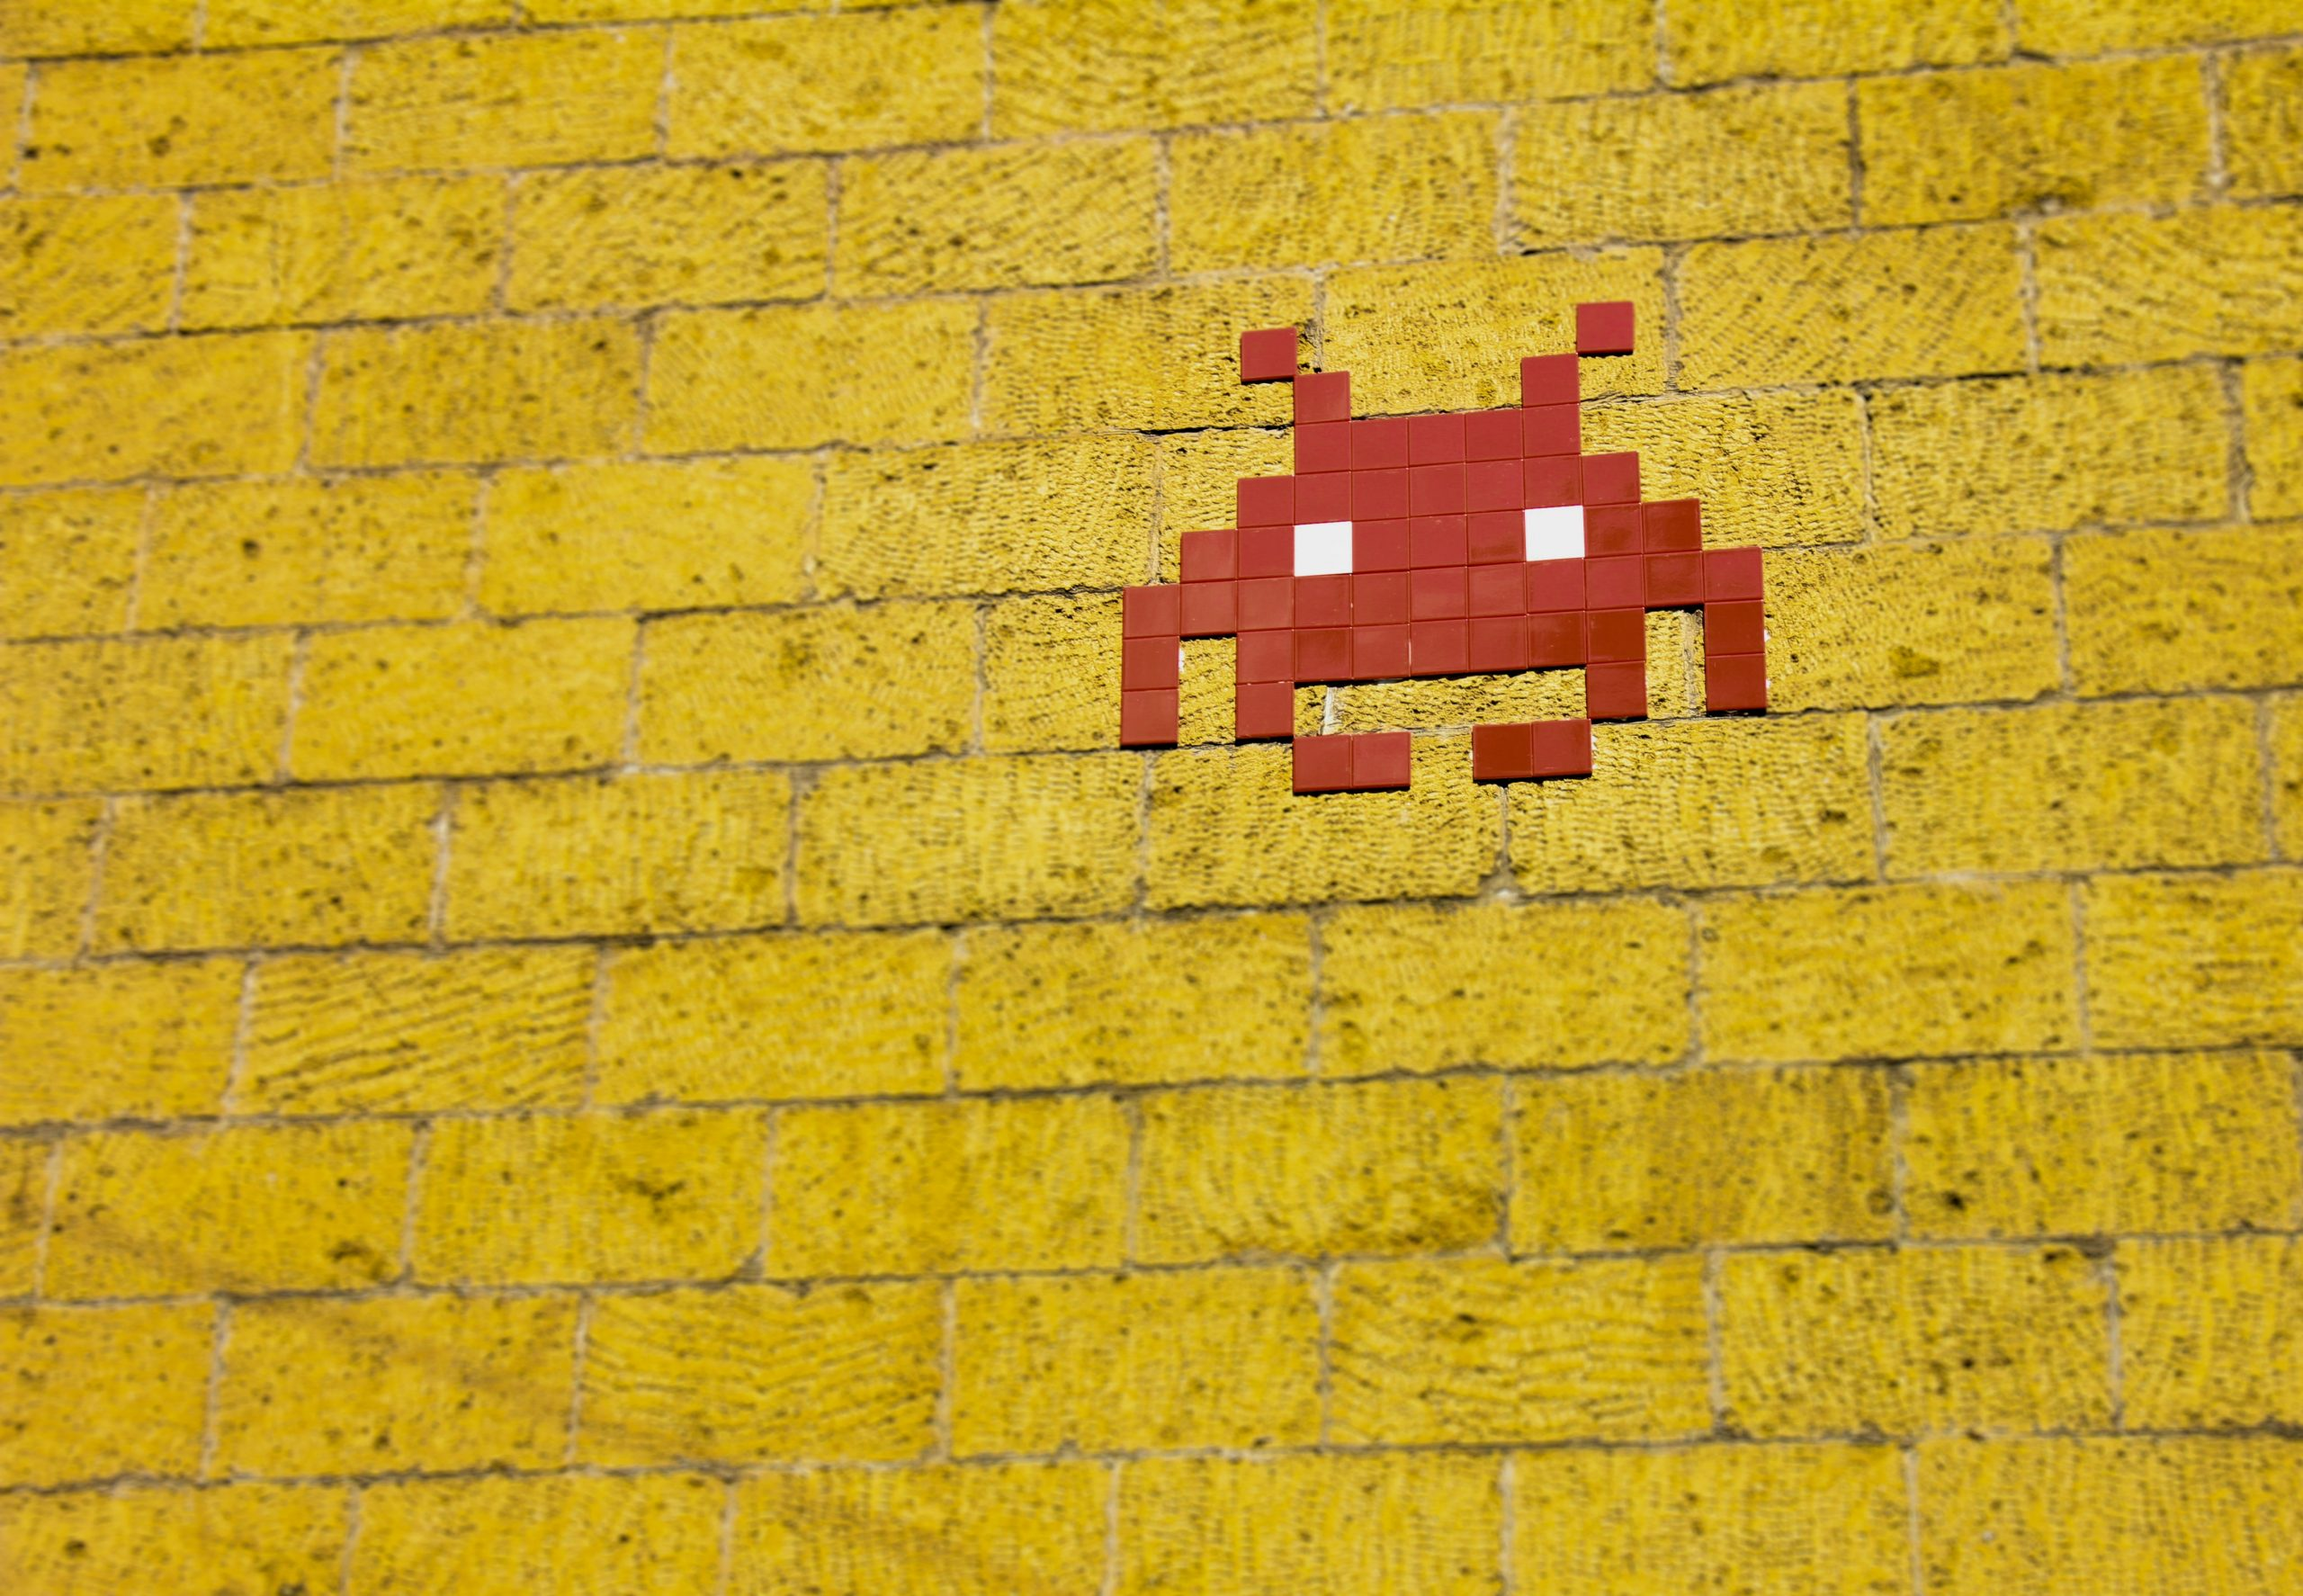 a red space invader on a yellow wall